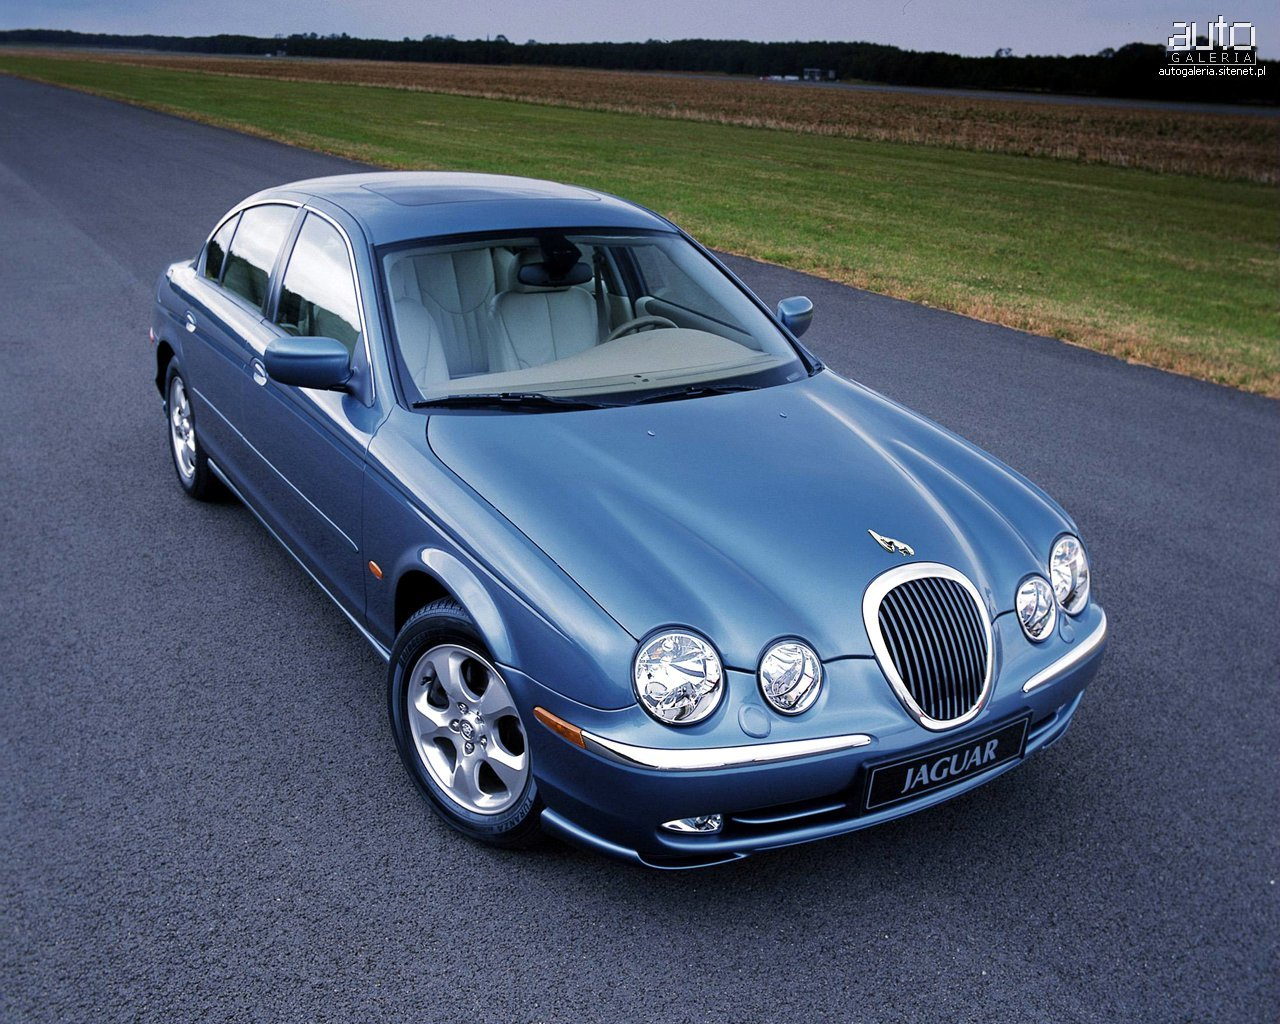 New Wanted Carz Blog Jaguar Cars Wallpapers On This Month